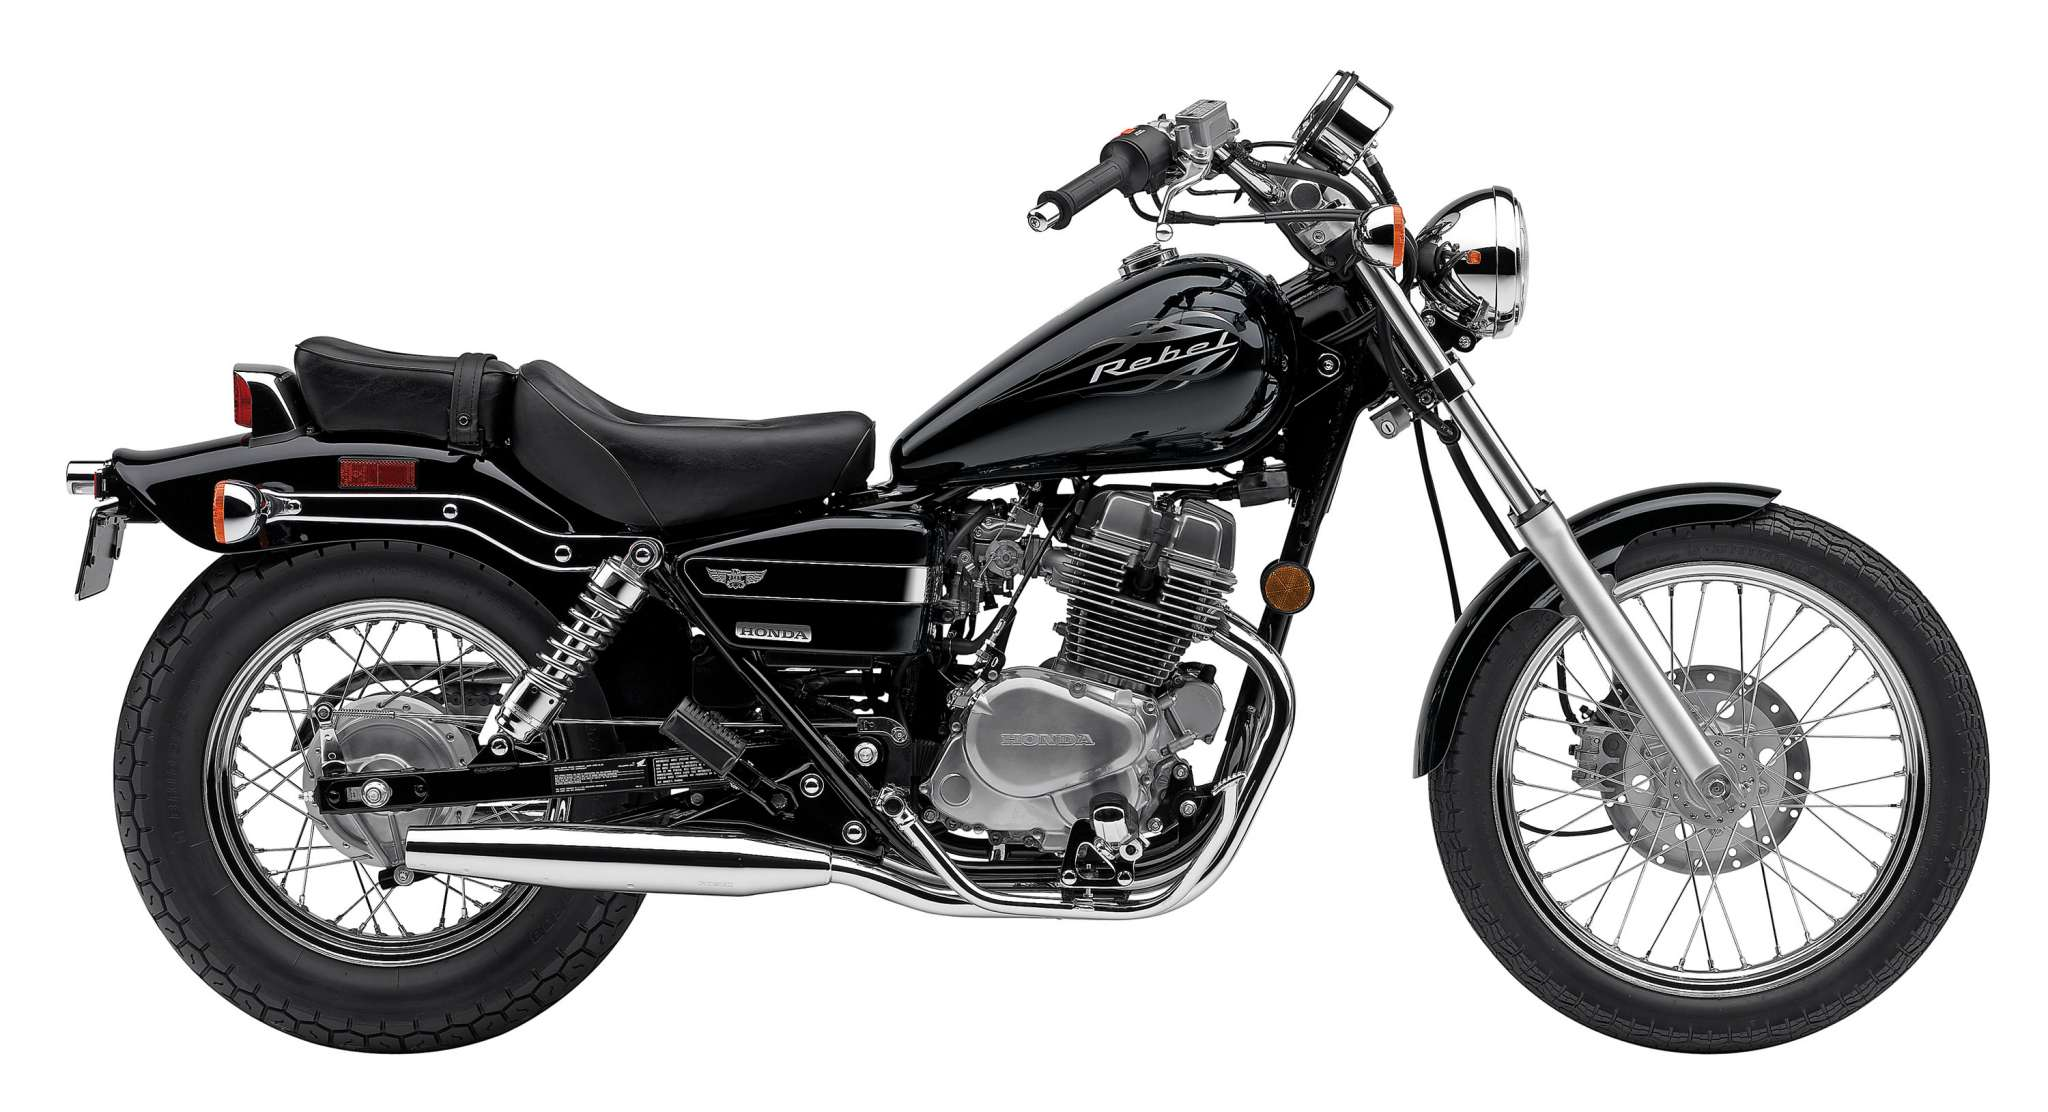 2013 Honda Rebel 250 CMX250C